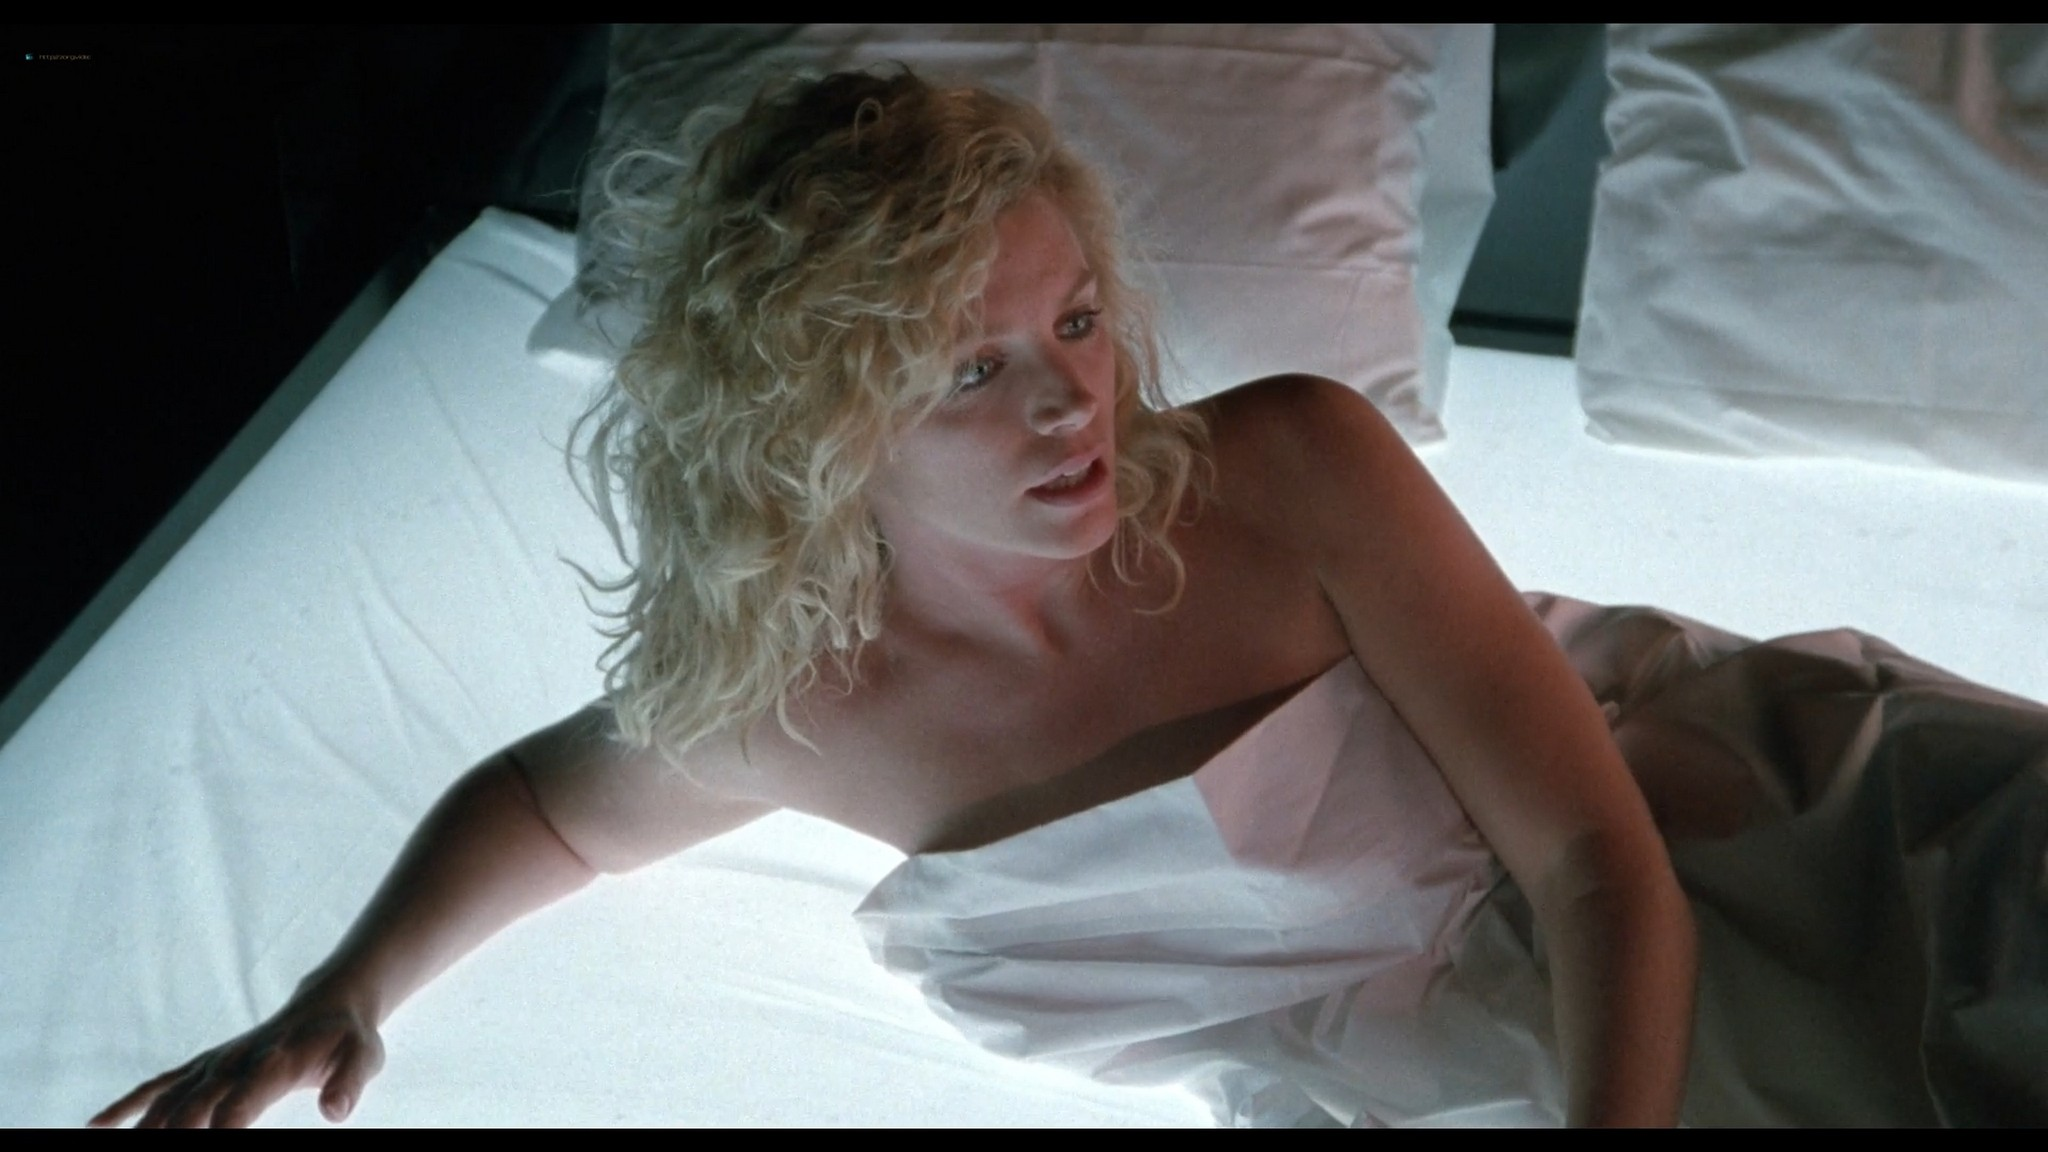 Shannon Tweed nude sex Adrienne Sachs nude sex in the shower In the Cold of the Night 1989 1080p BluRay 6